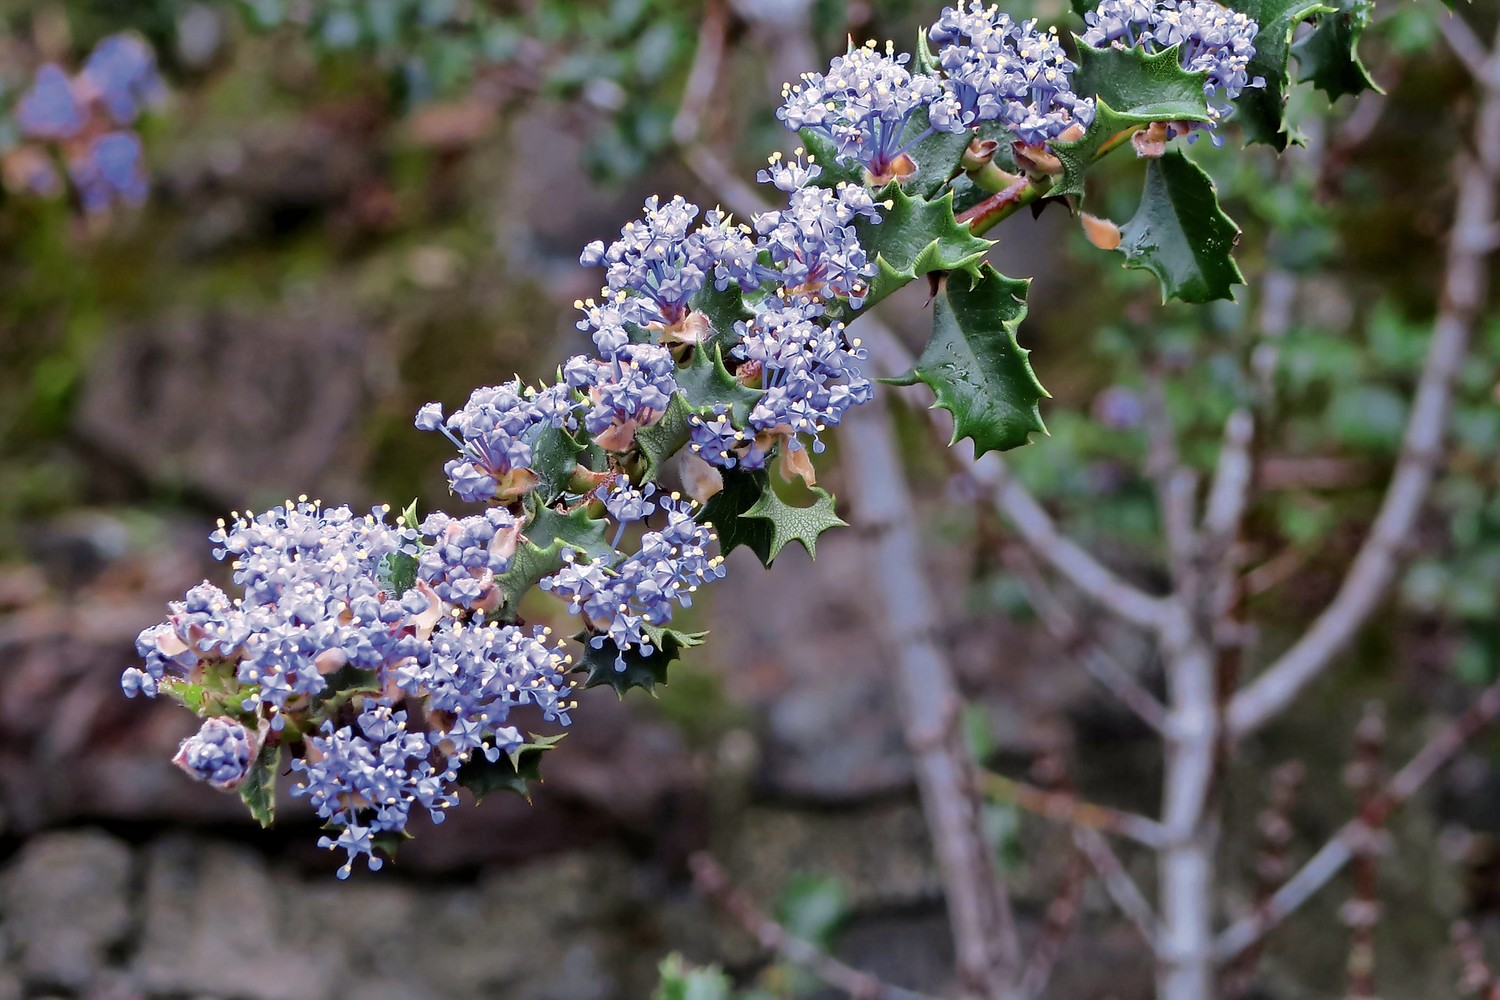 Even a color like purple can generate different gender designations when we look at botanical latin. These plants could be referred to in the feminine sense, neutral, or like the Ceanothus purpureus, masculine.